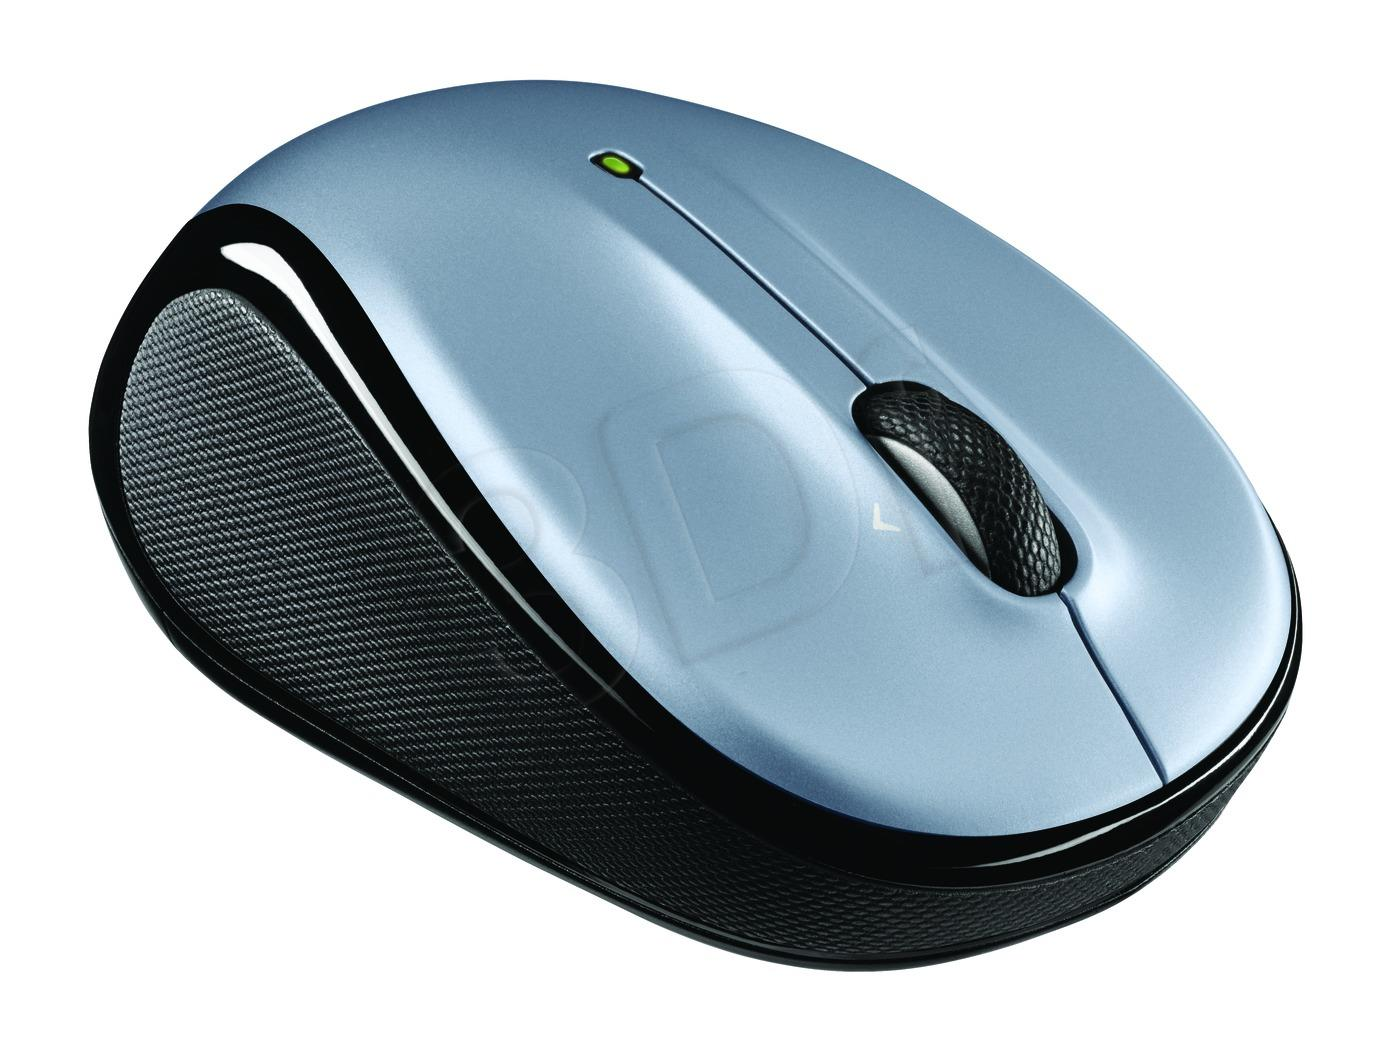 Logitech M325, Wireless light silver Datora pele